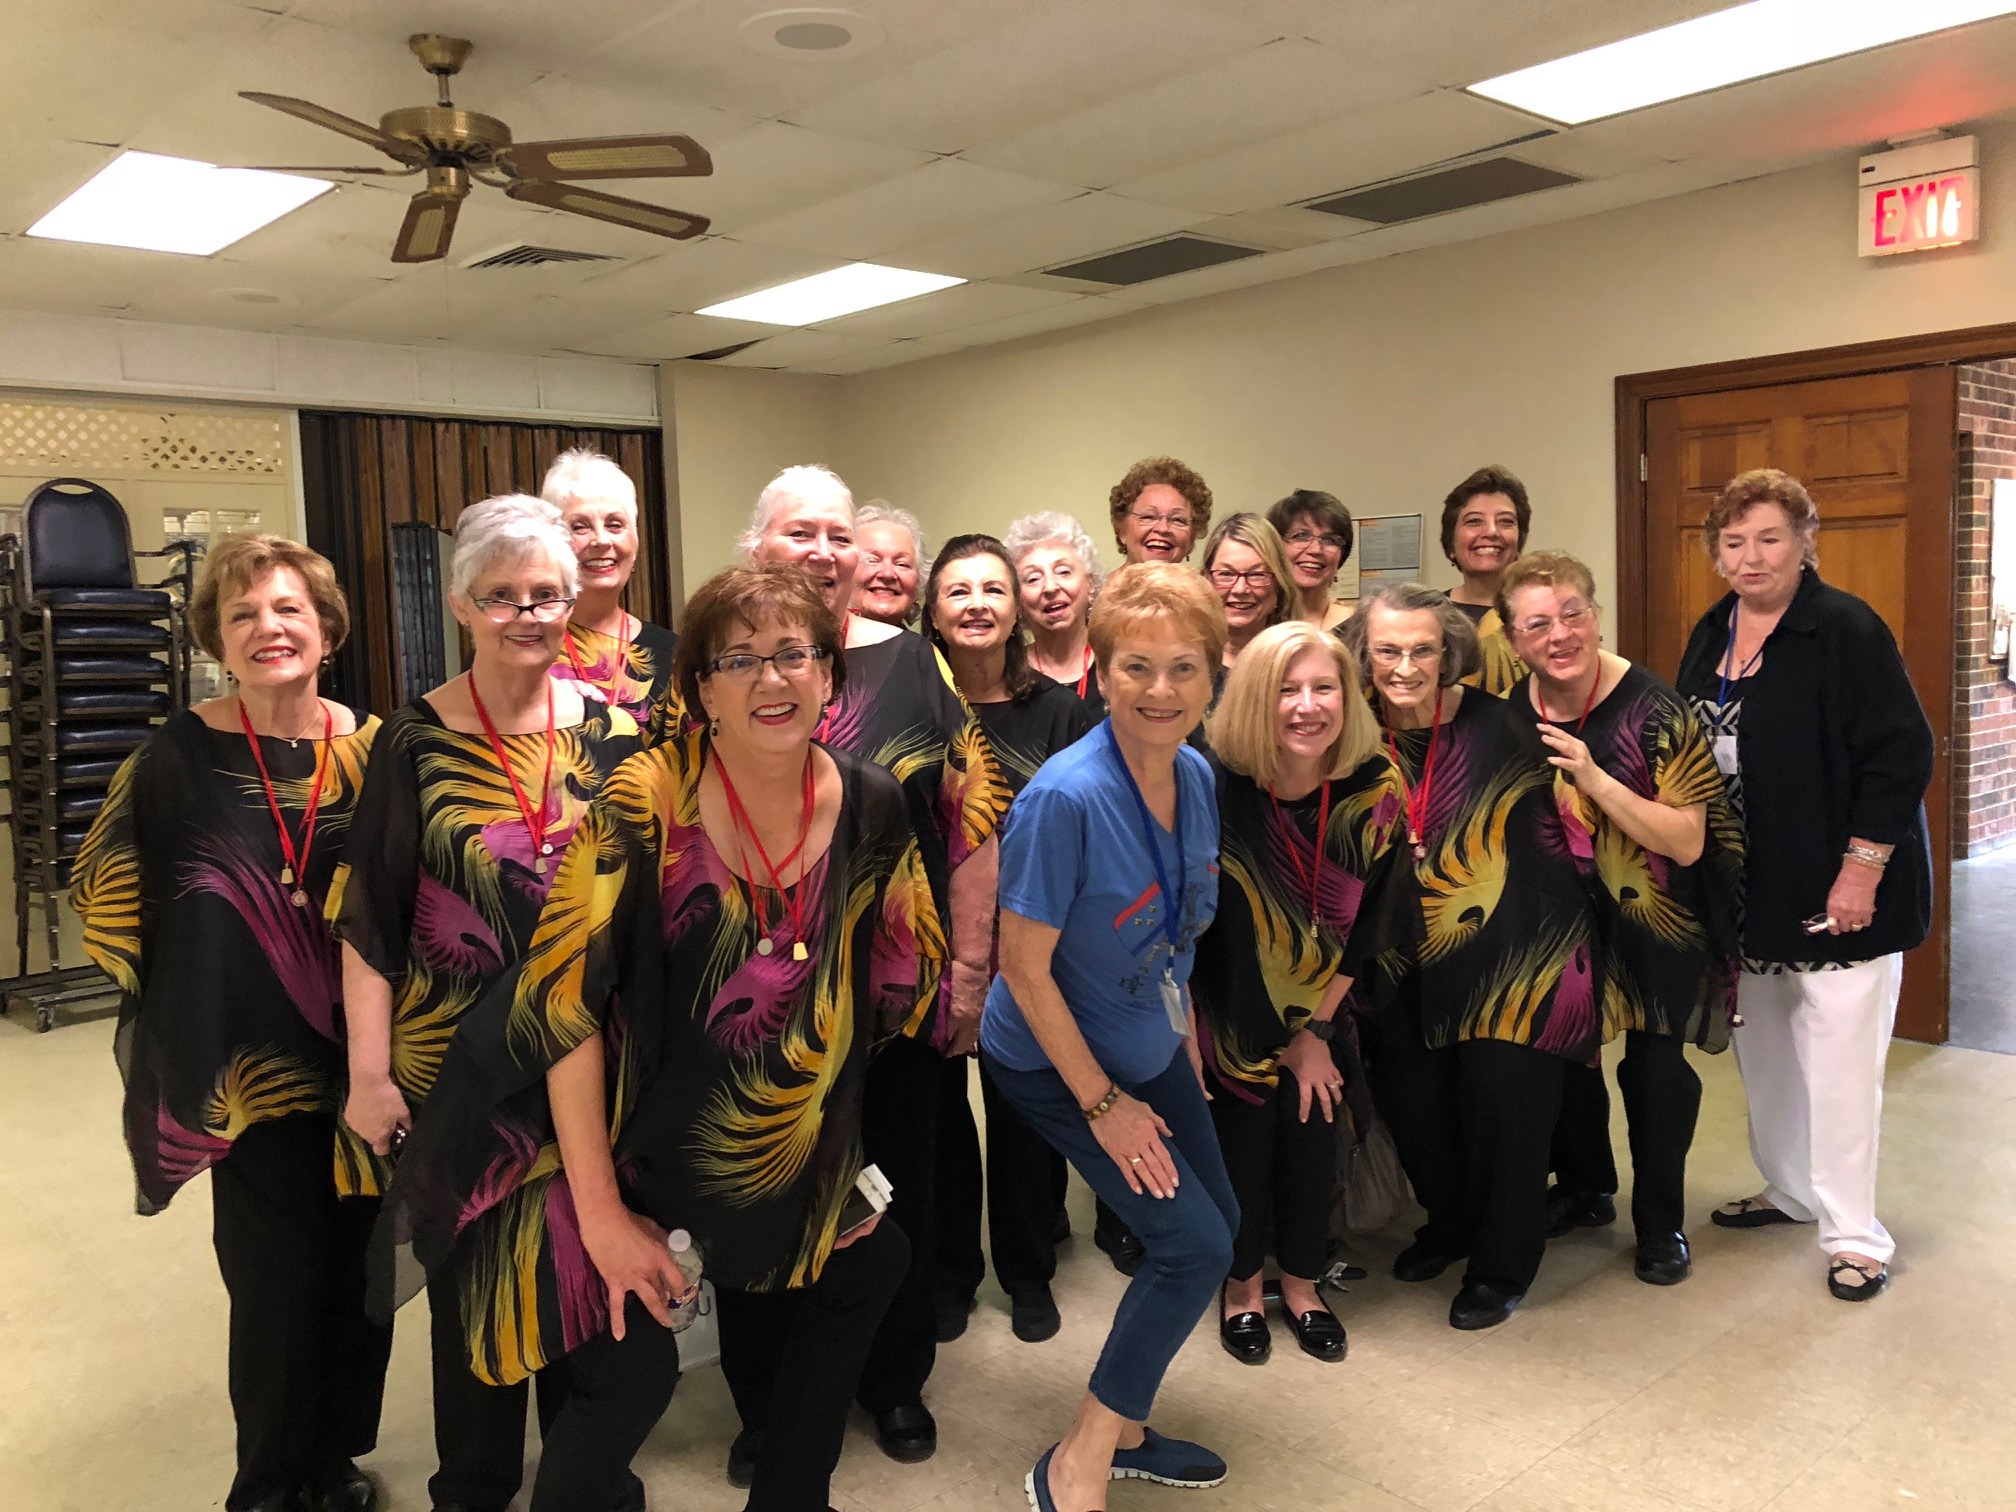 CCSC Performs at Fun Seekers Club, Harahan